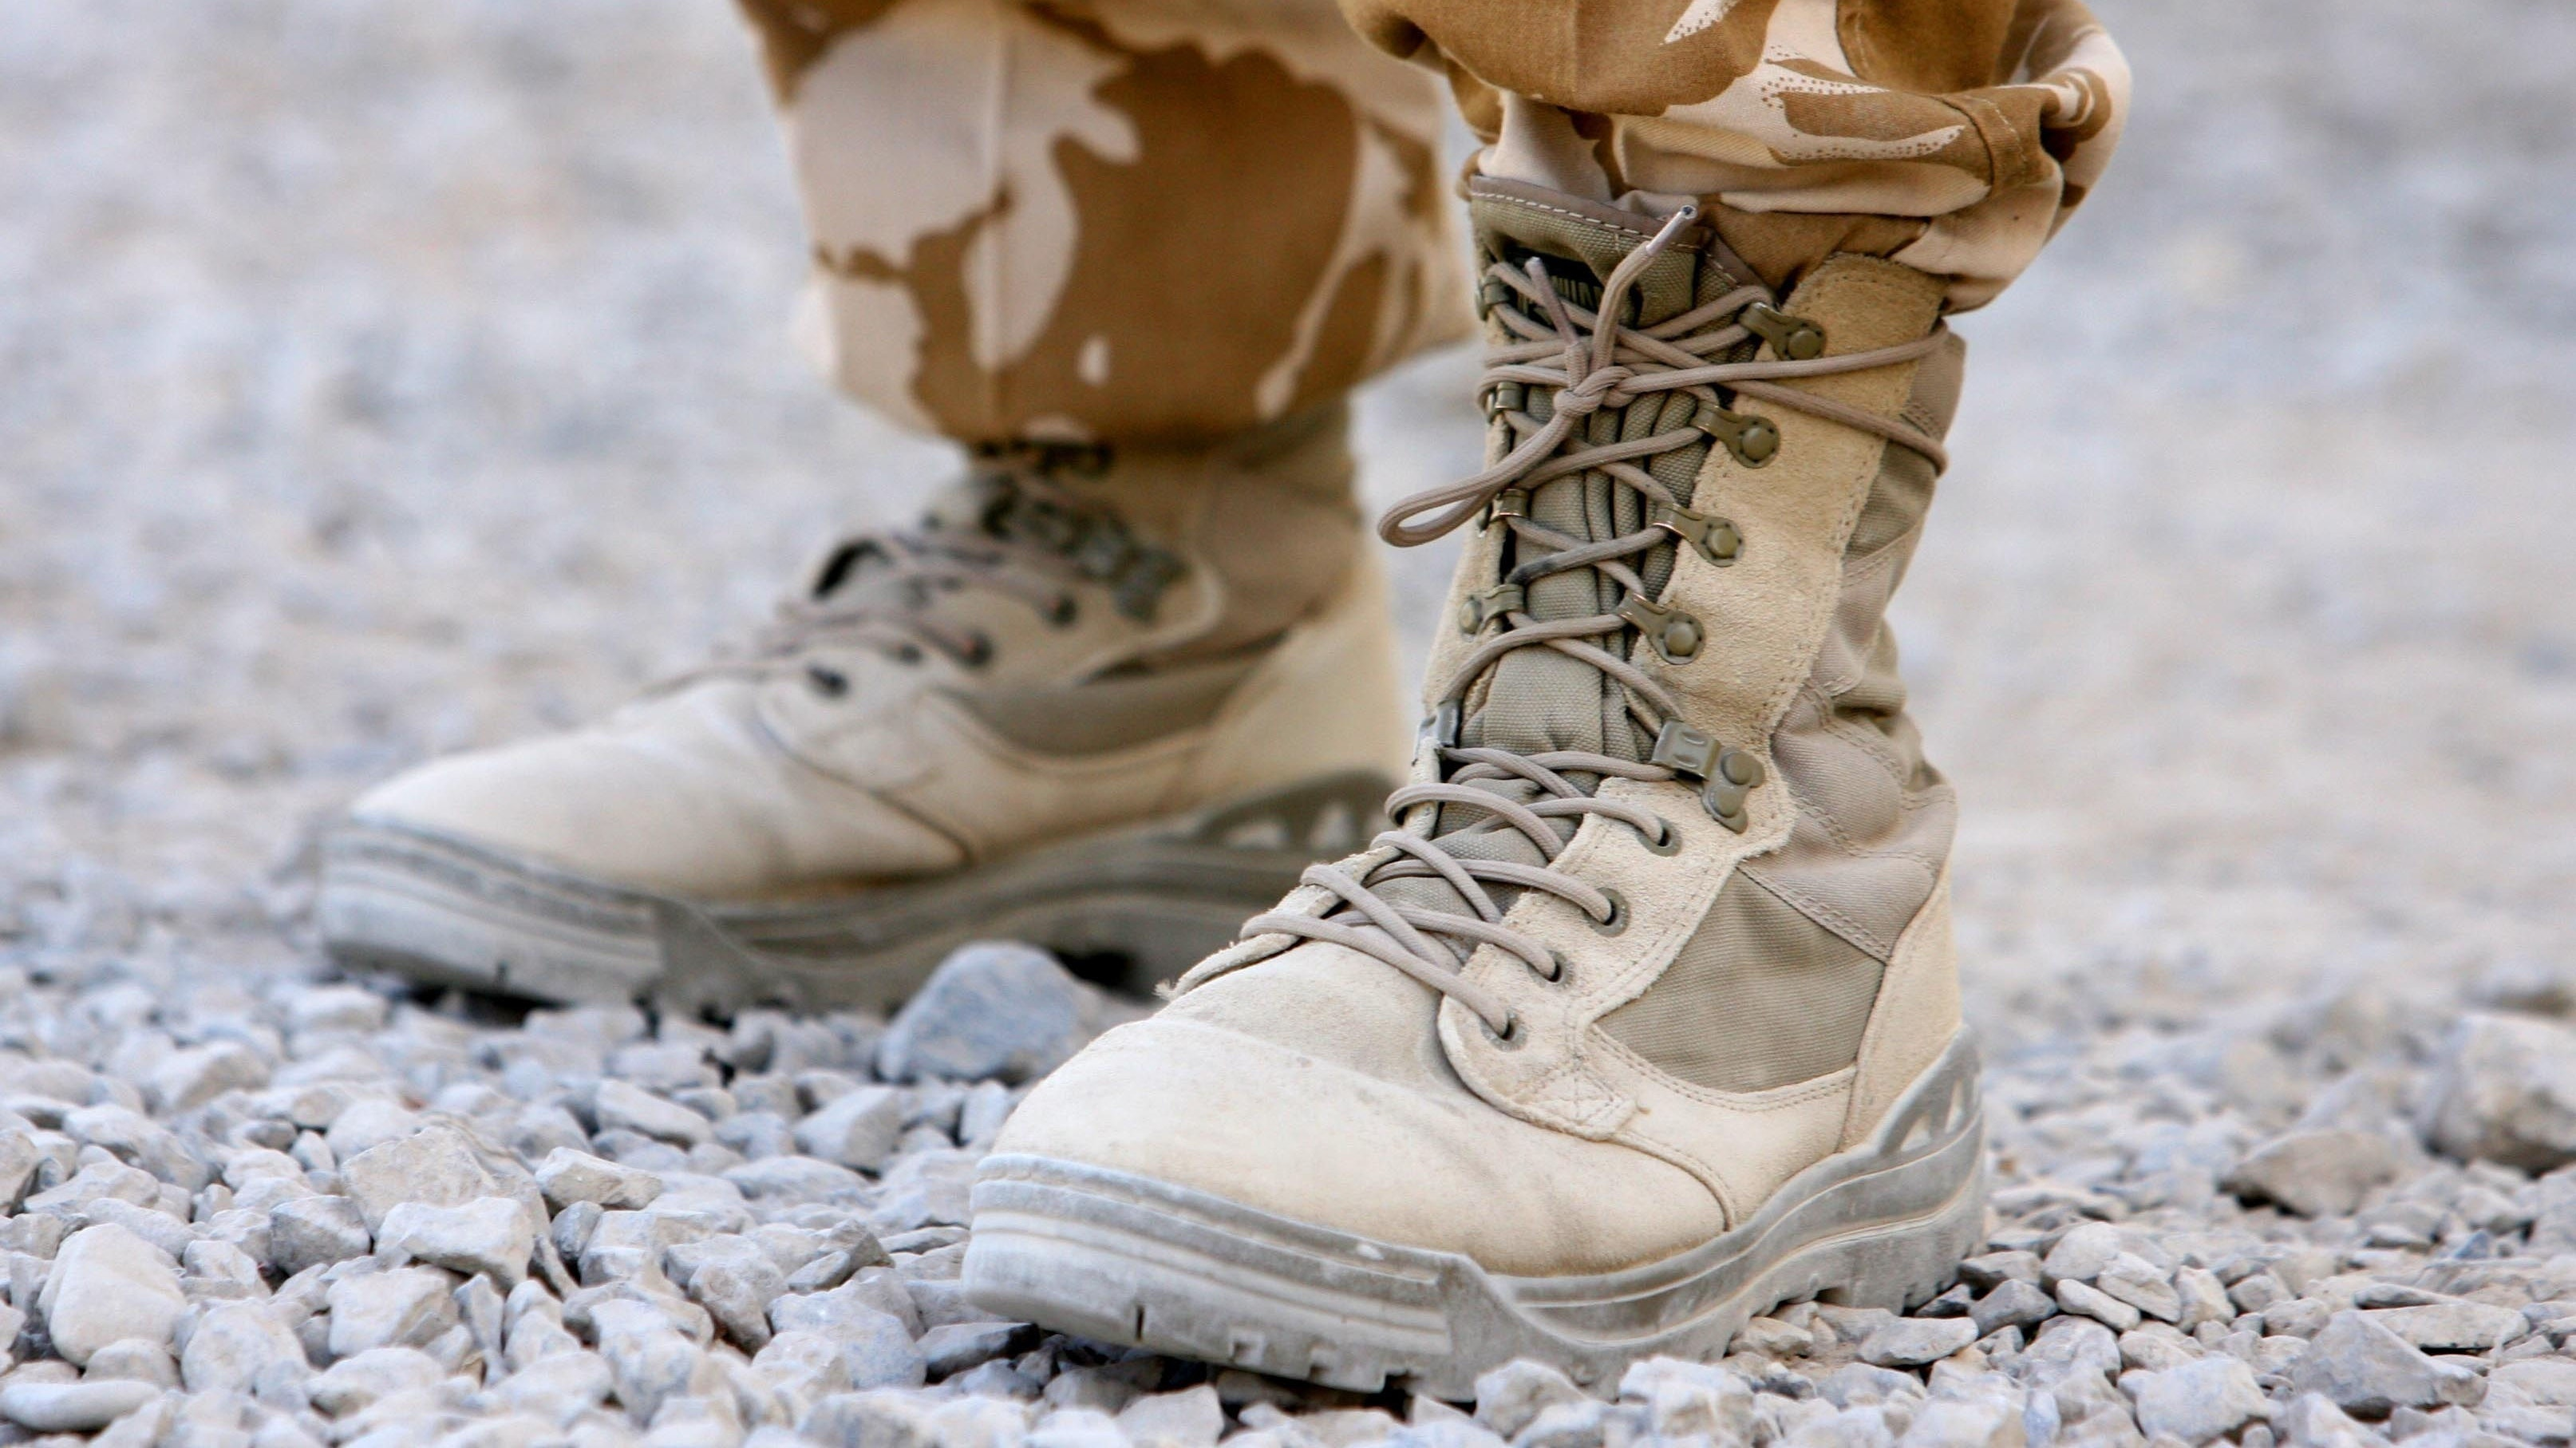 Army recruits abuse inquiry collapses